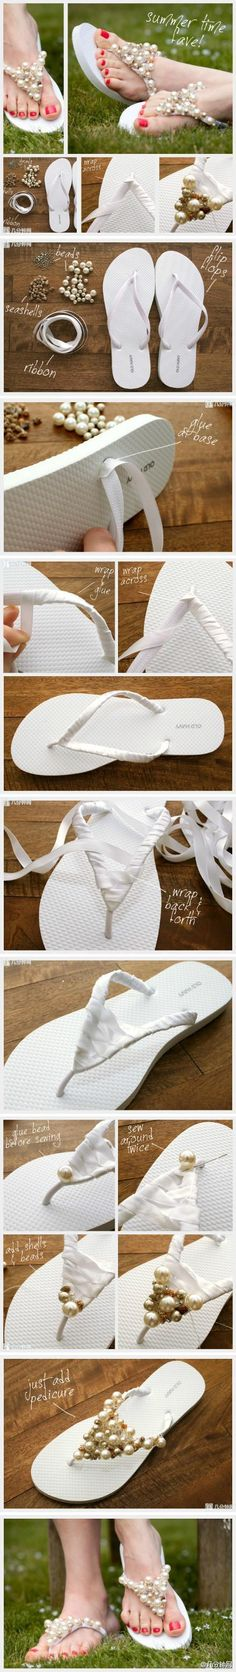 Gorgeous Flip Flops Visit: http://madebyhands.info/gorgeous-flip-flops/ #craft #DIY #craftideas